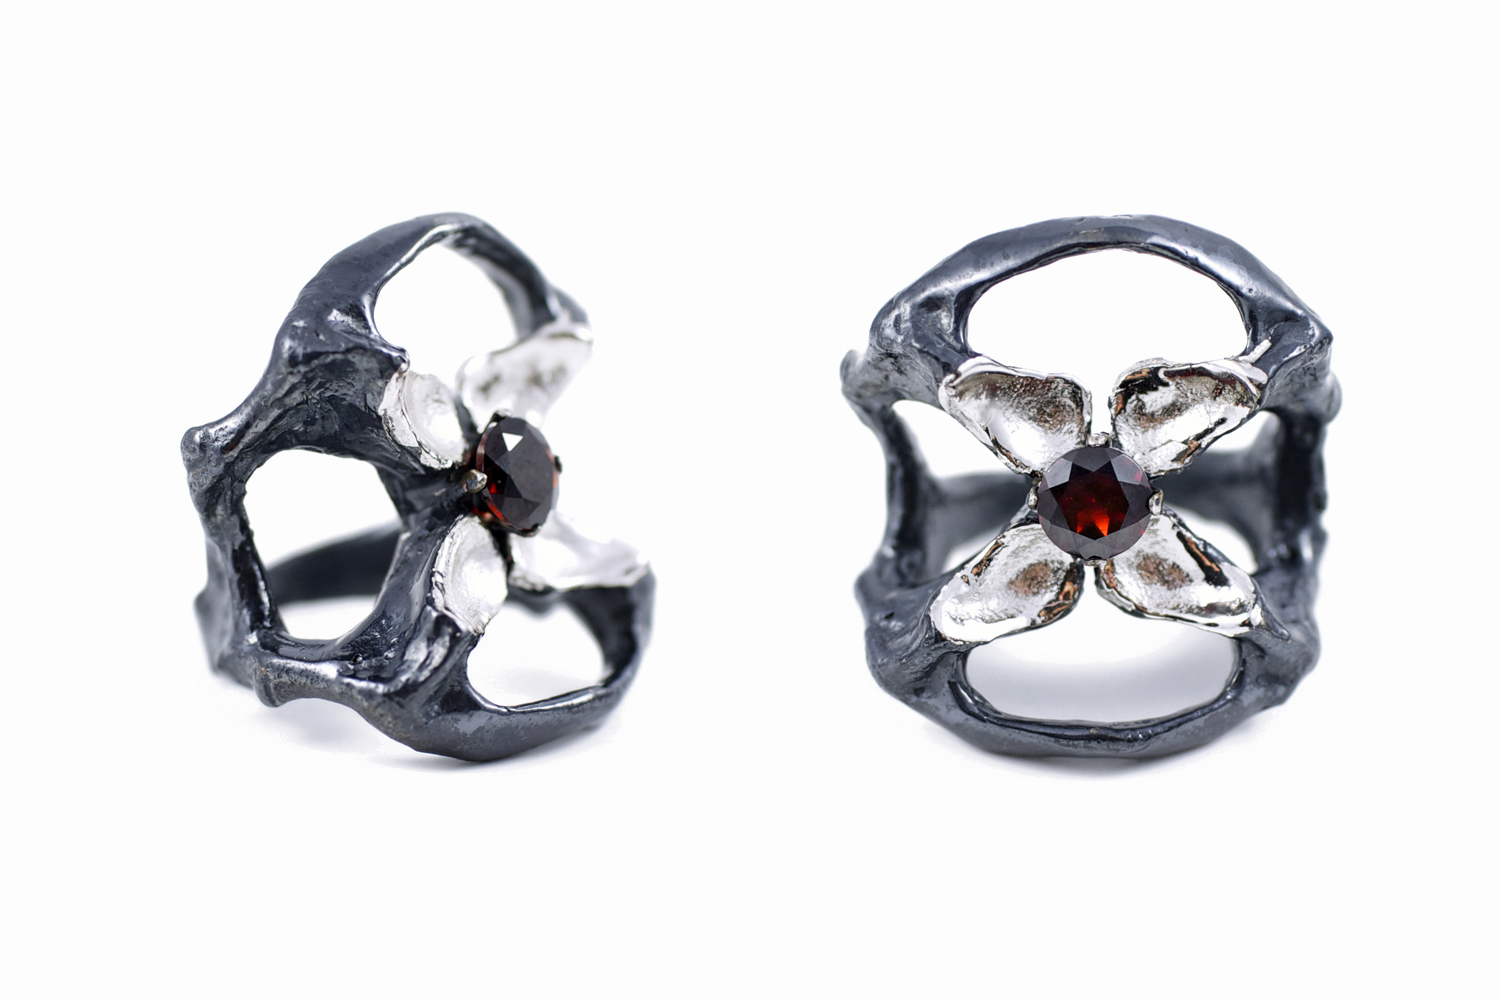 Unfolded Ring - The Flowers Remaining for  Greensmith Exhibition //solid Argentium Sterling Silver, Garnet (2014)